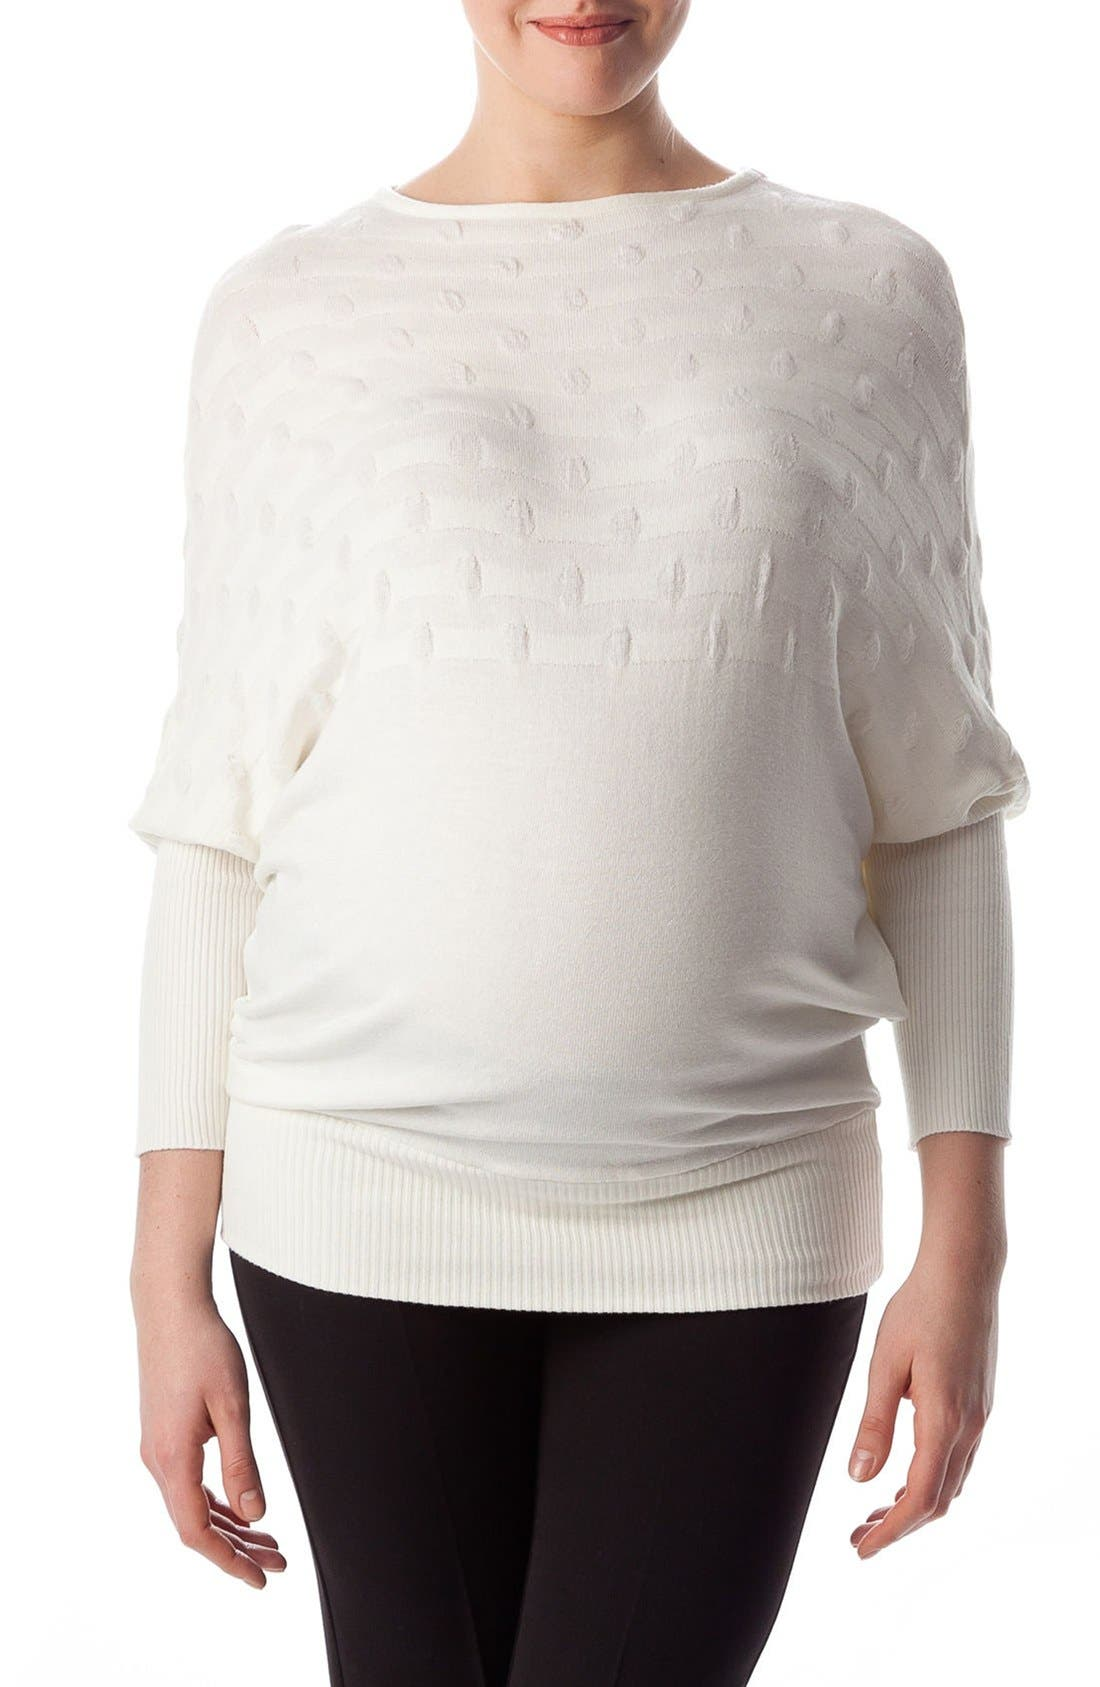 Megeve Maternity Top,                             Main thumbnail 1, color,                             Cream White